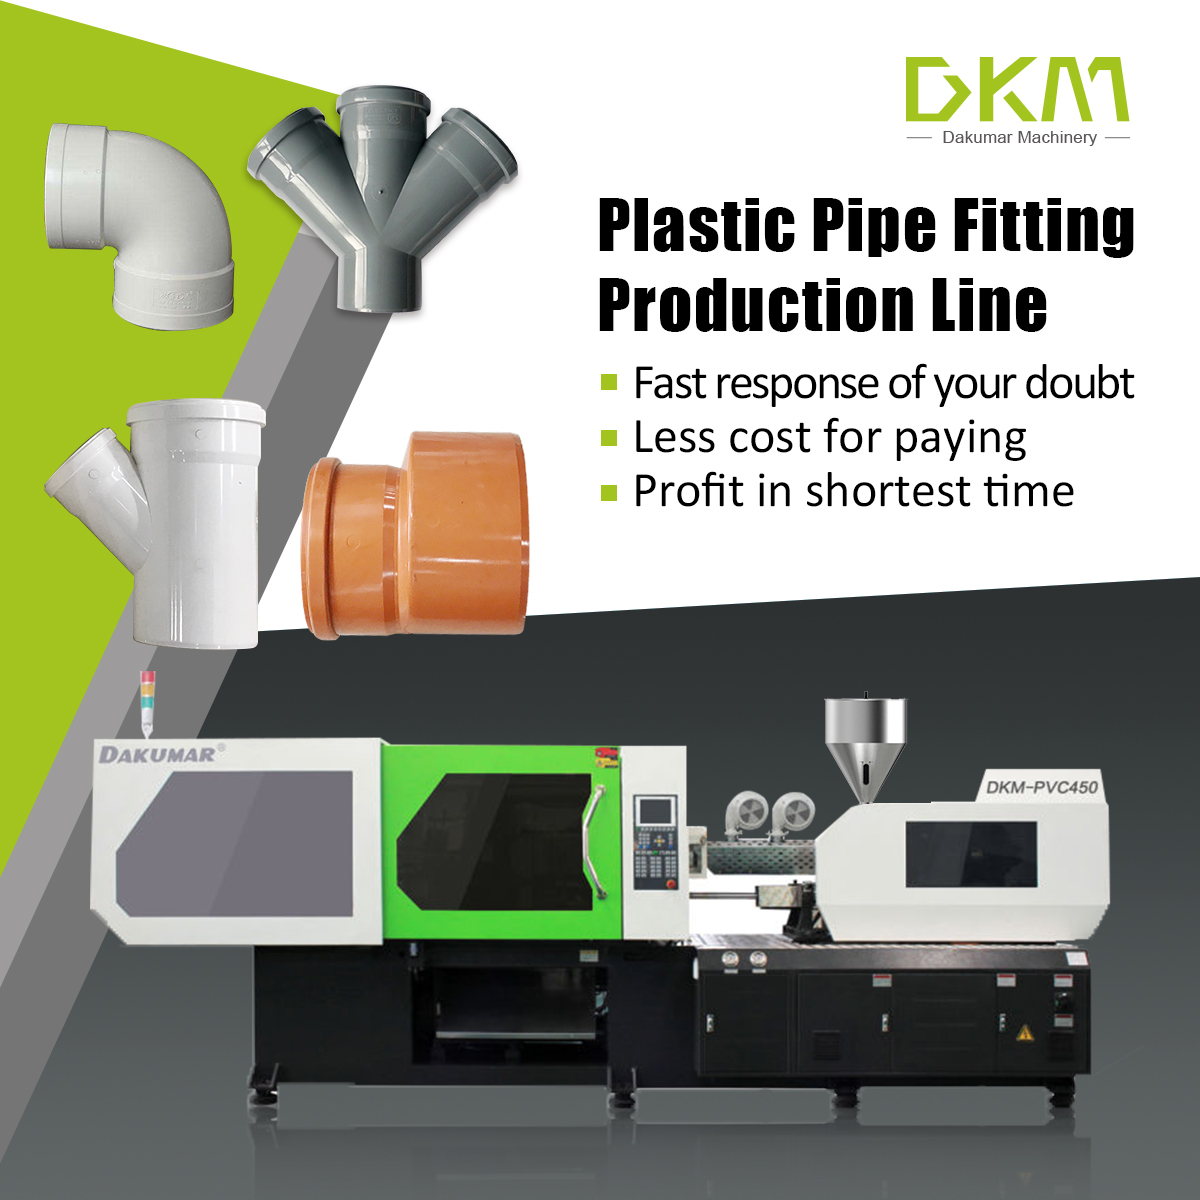 Plastic Injection Molding Machine Plastic Molding Machine